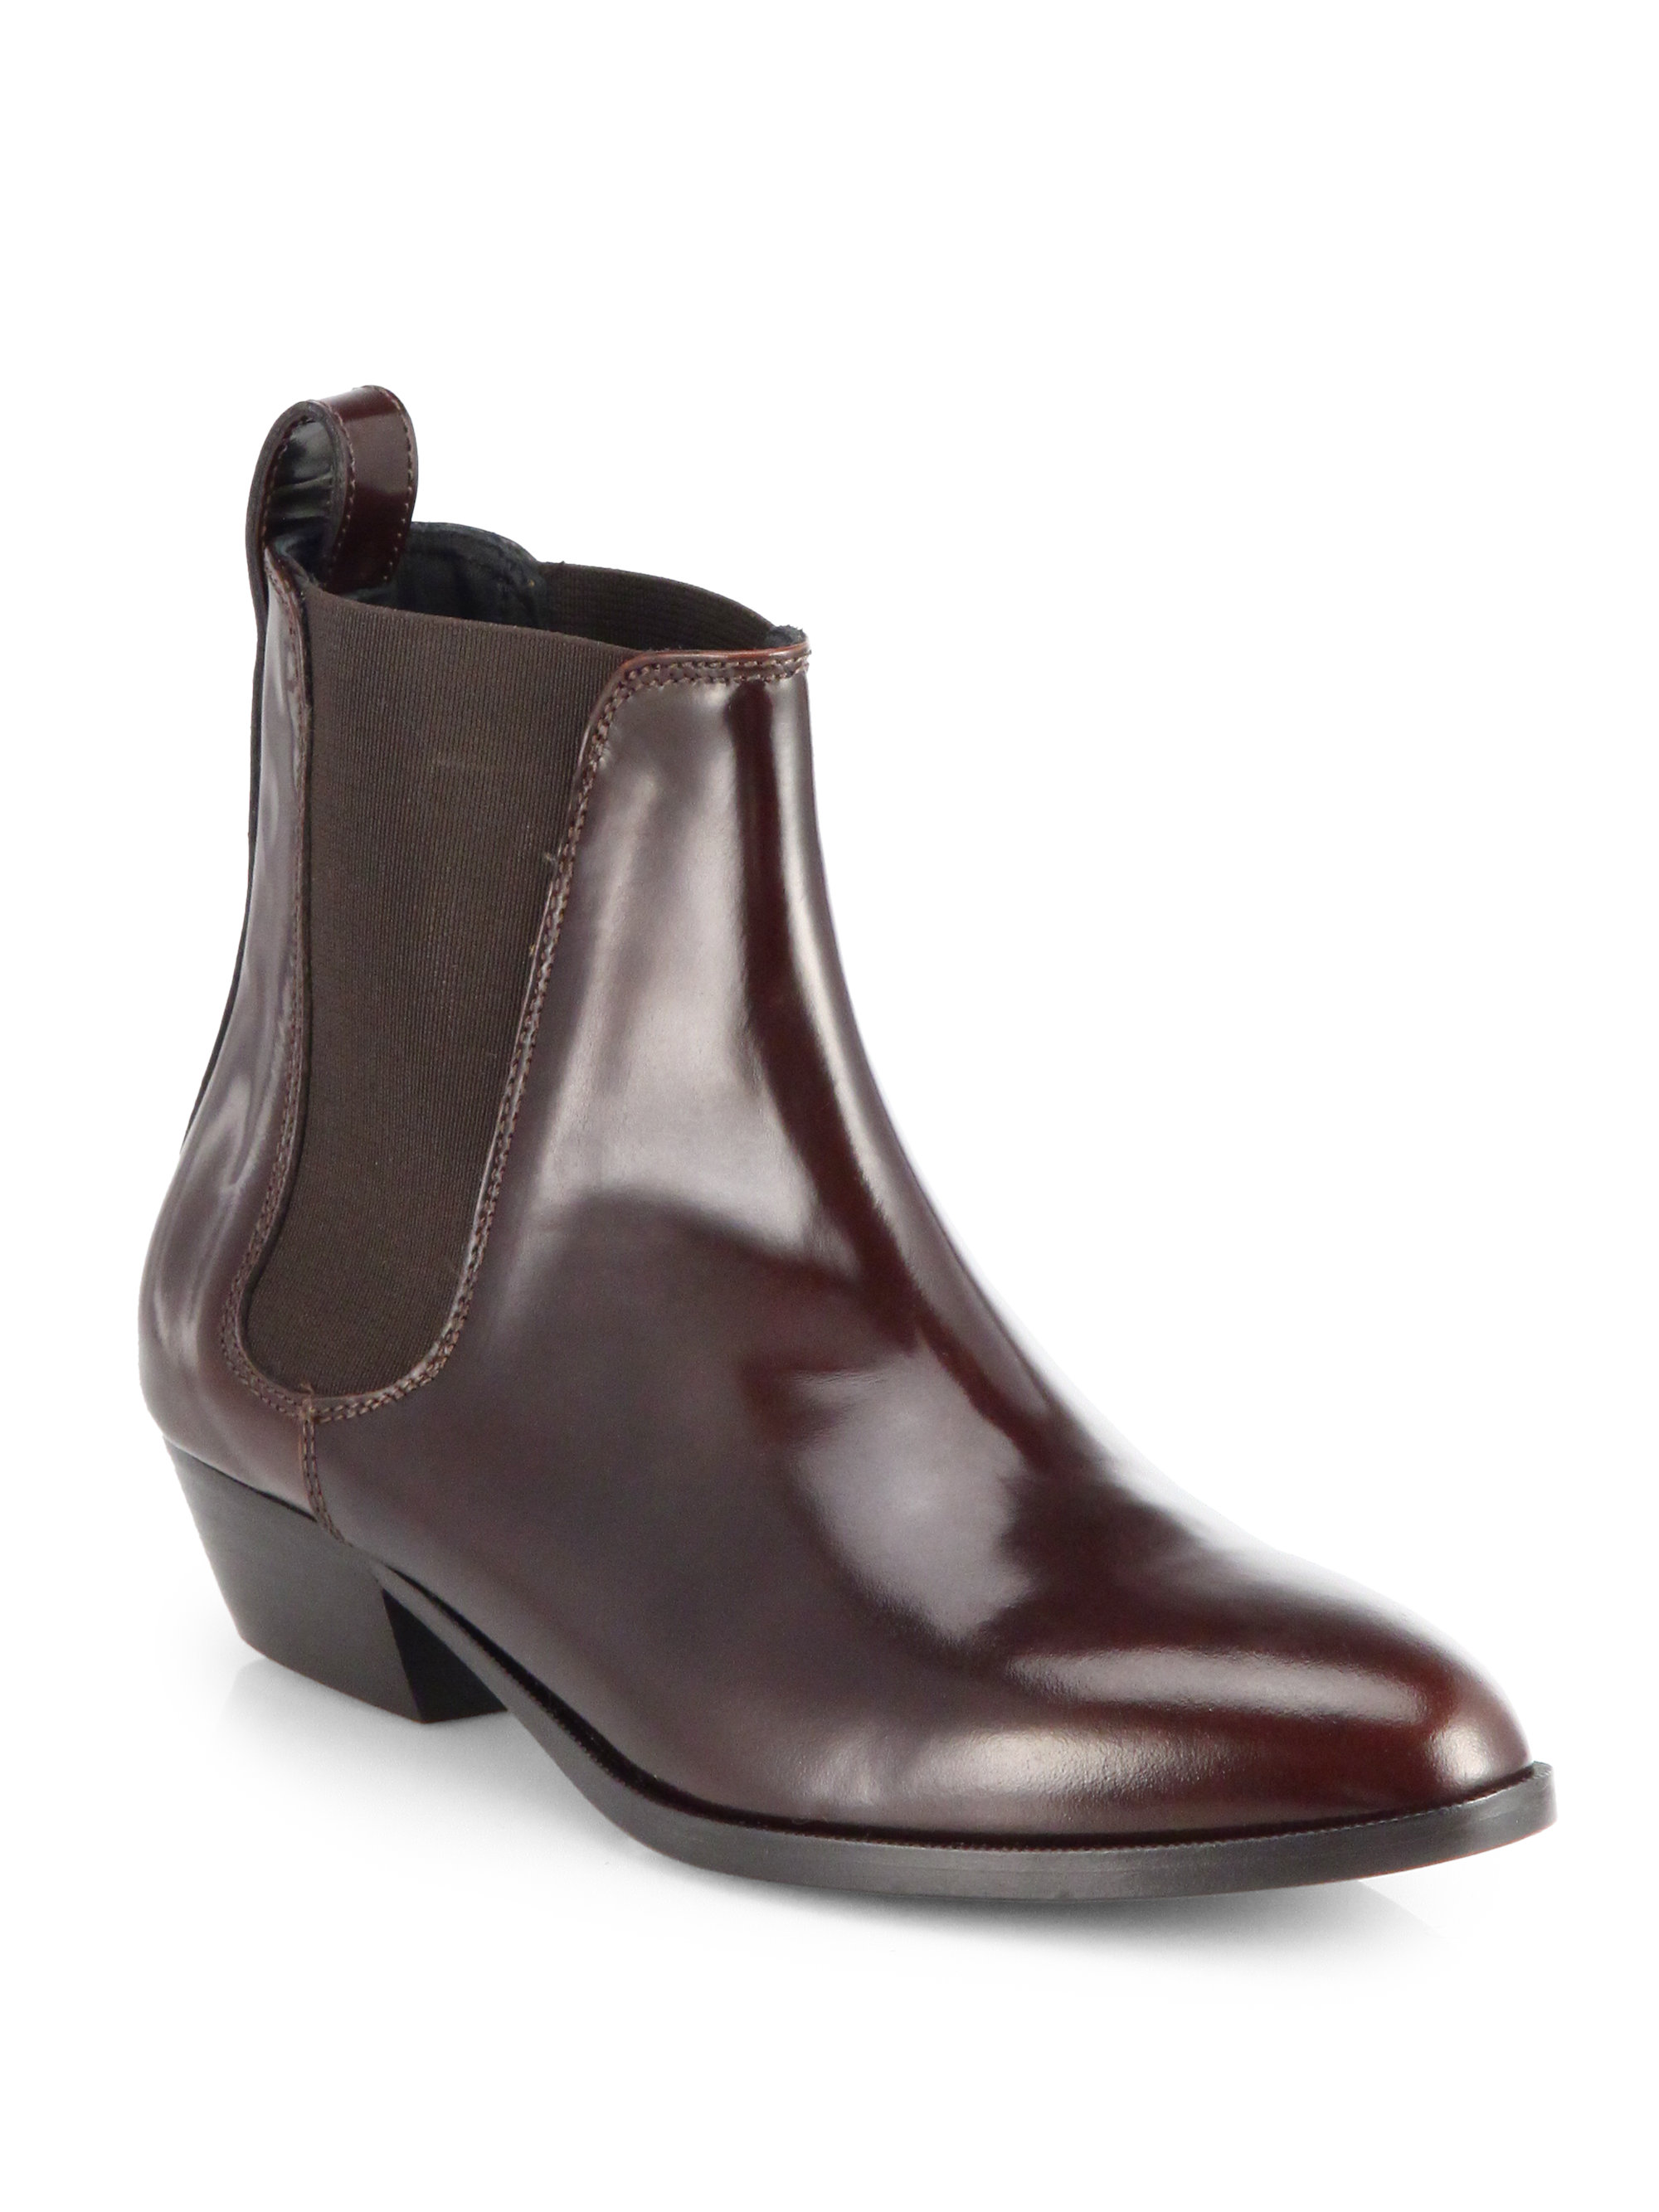 burberry tallow leather chelsea boots in brown chestnut